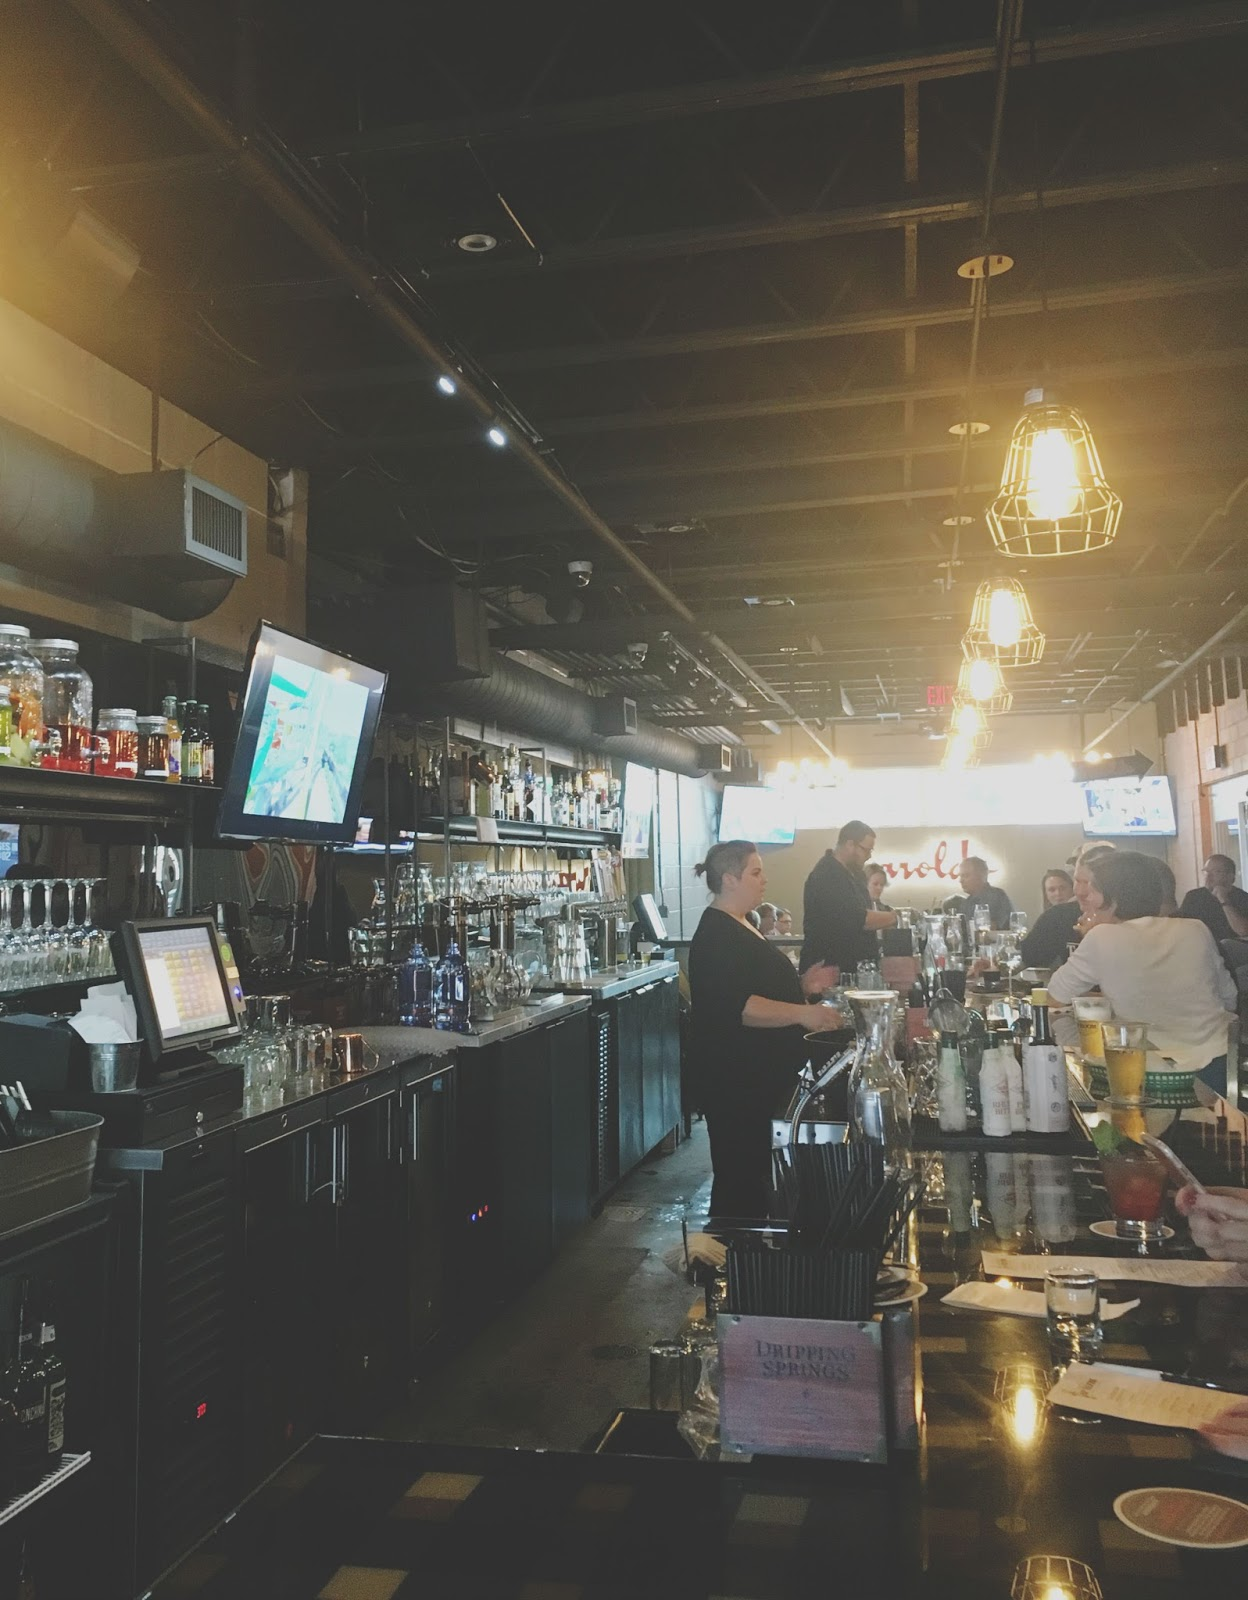 Harold's Tap Room - A bar/restaurant in Houston, Texas